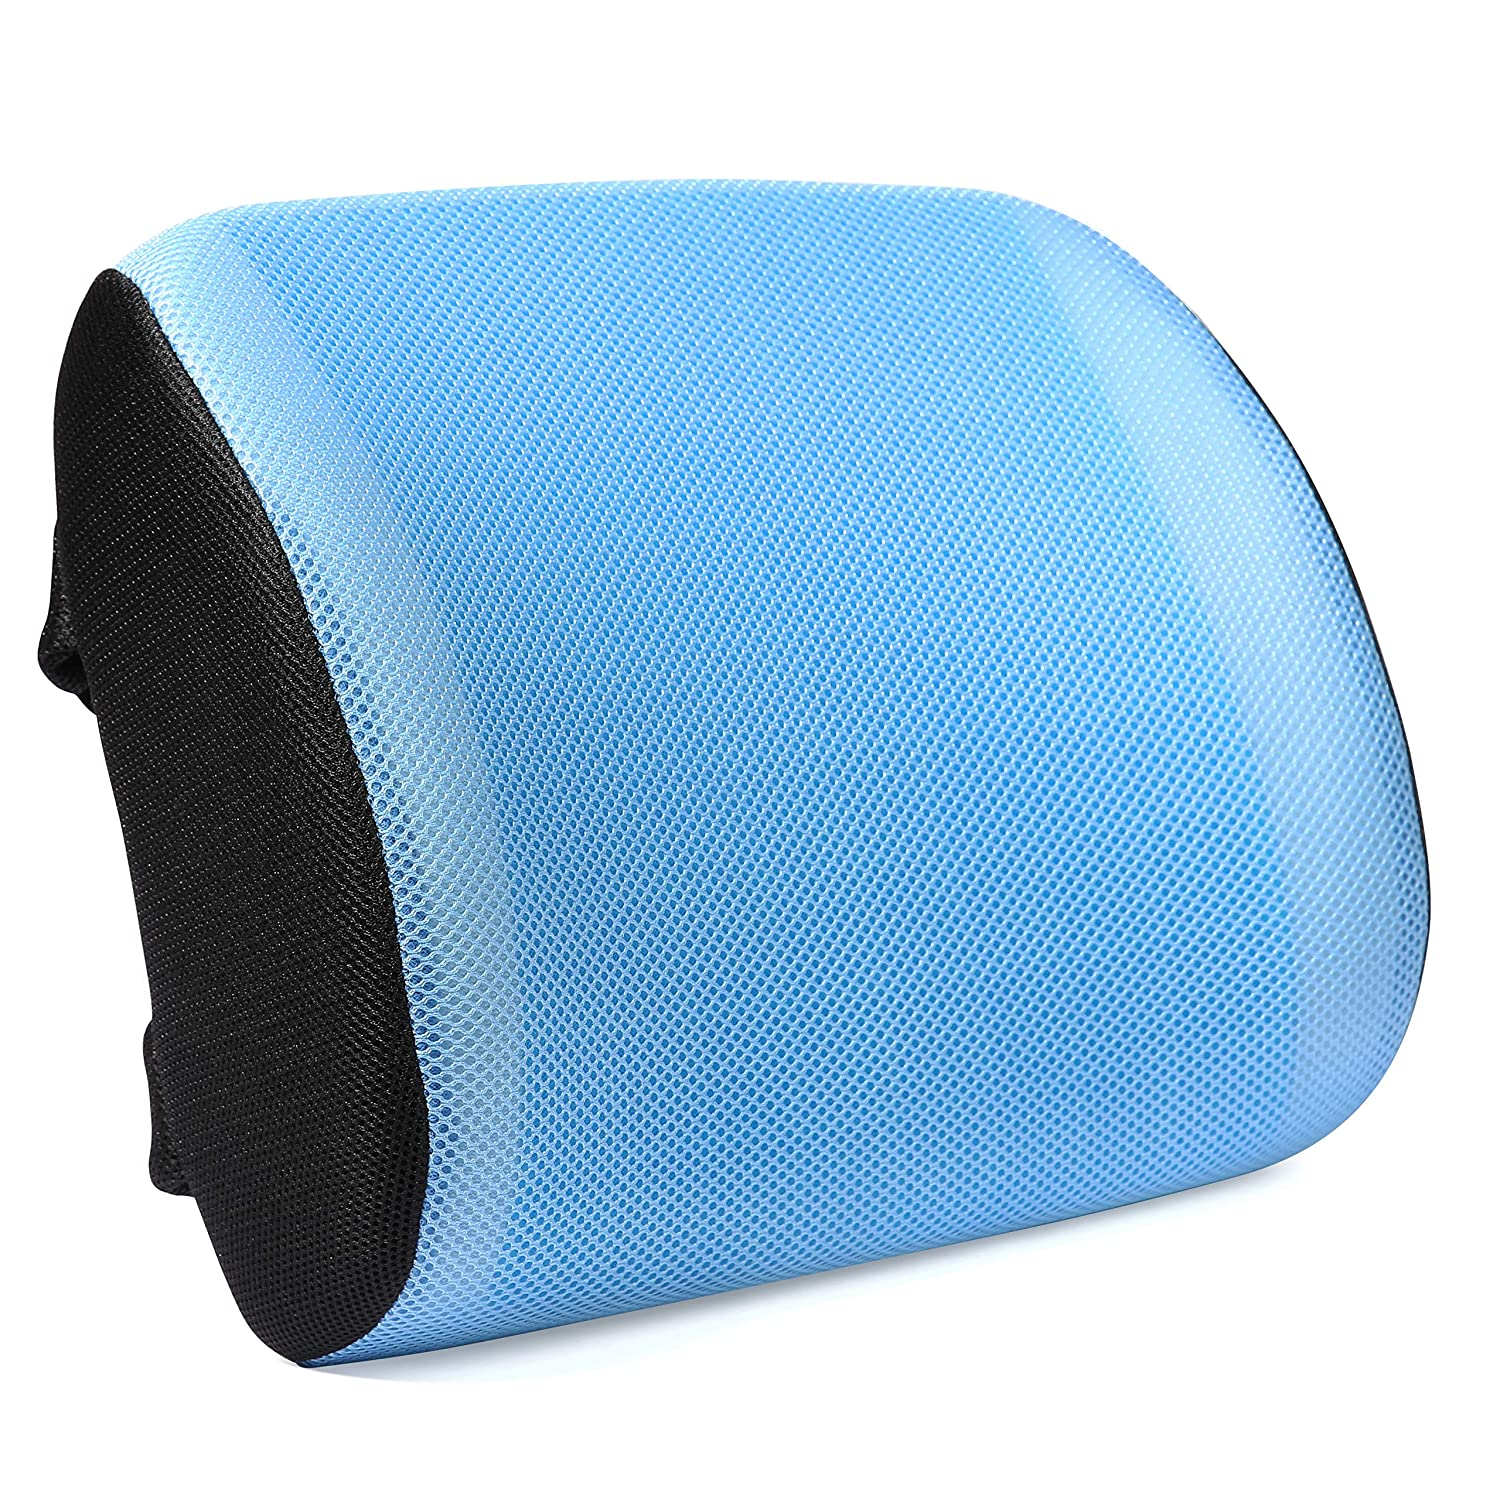 Memory Foam Lumbar Support Back Cushion with 3D Mesh Cover Balanced Firmness Designed for Lower Back Pain Relief- Ideal Back Pillow for Computer//Office Chair Car Seat Tdbest Recliner